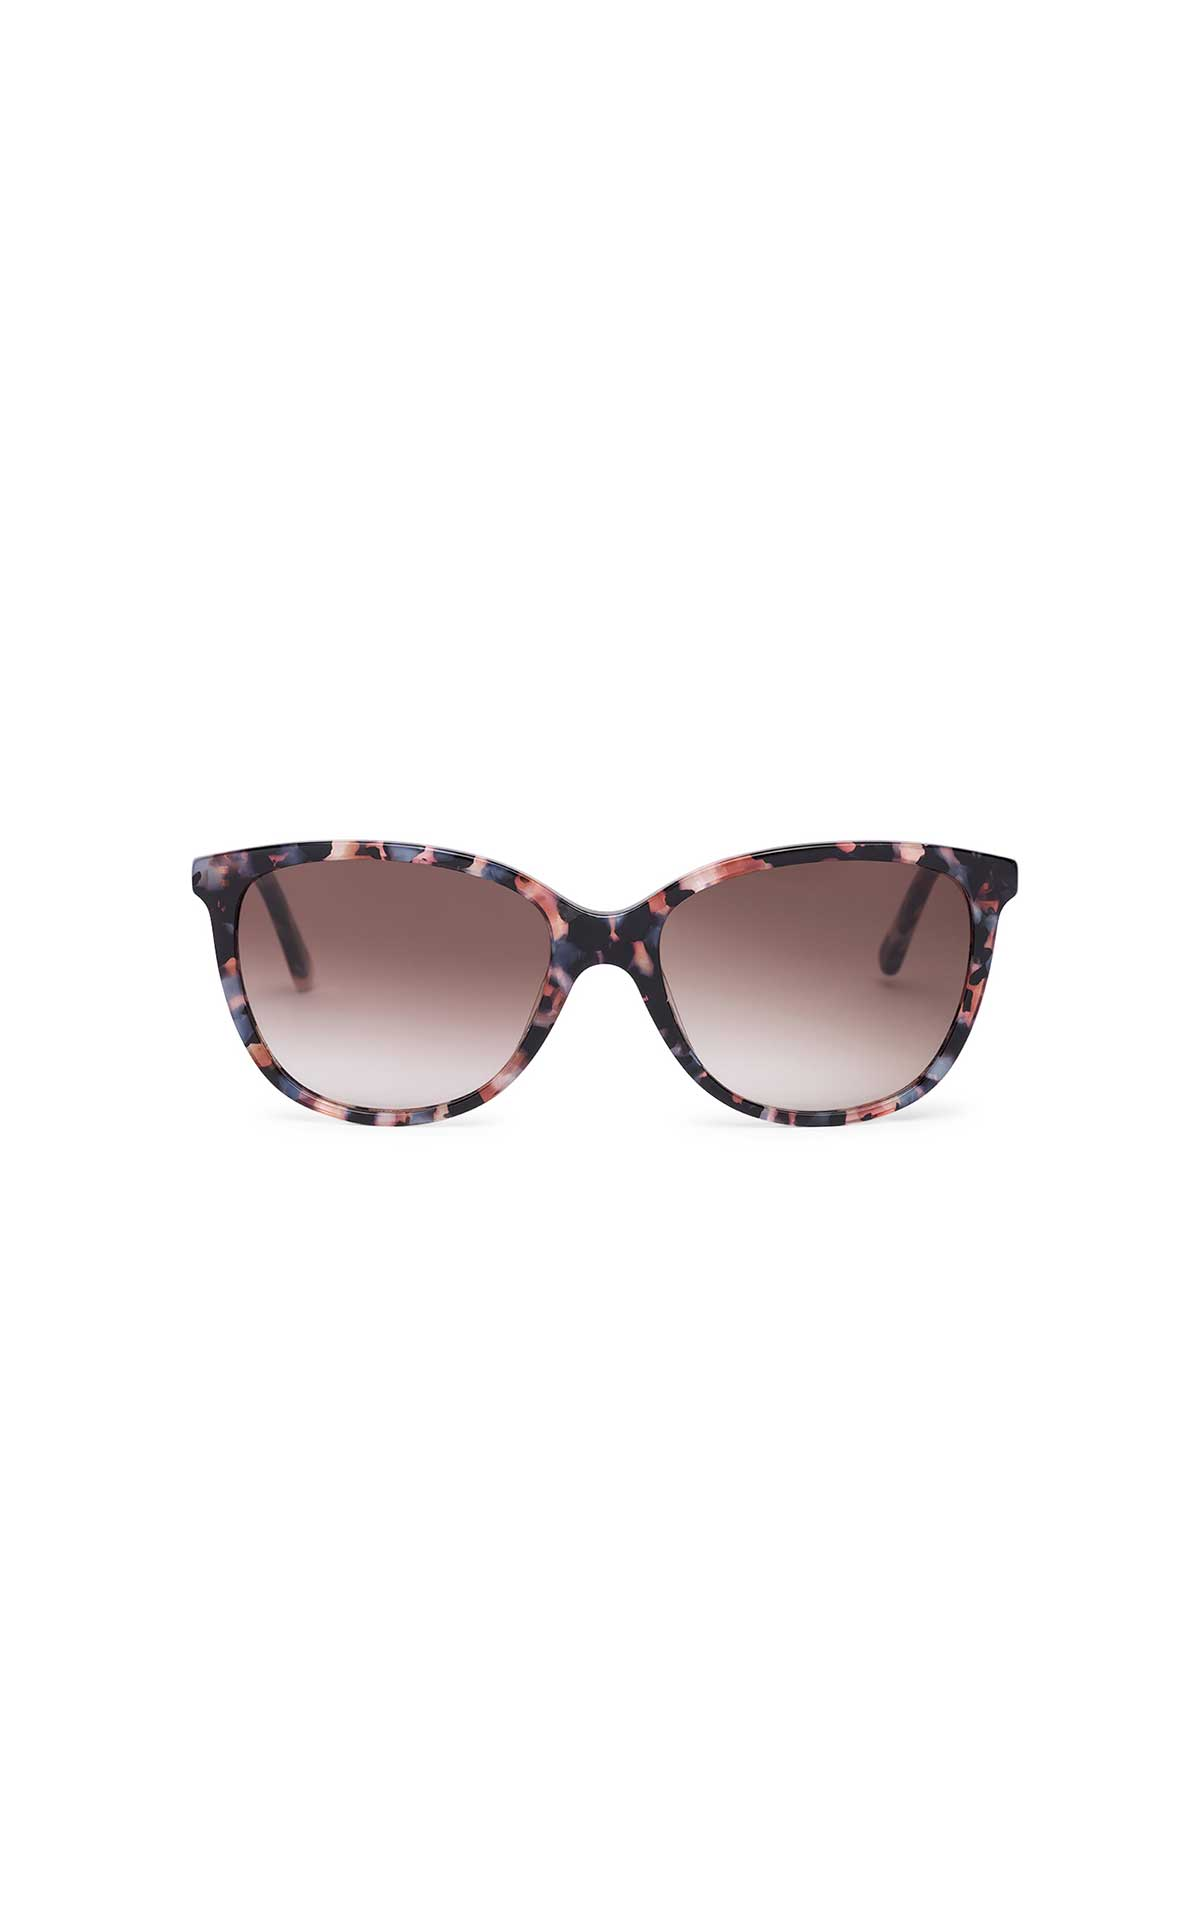 Printed sunglasses woman Cottet